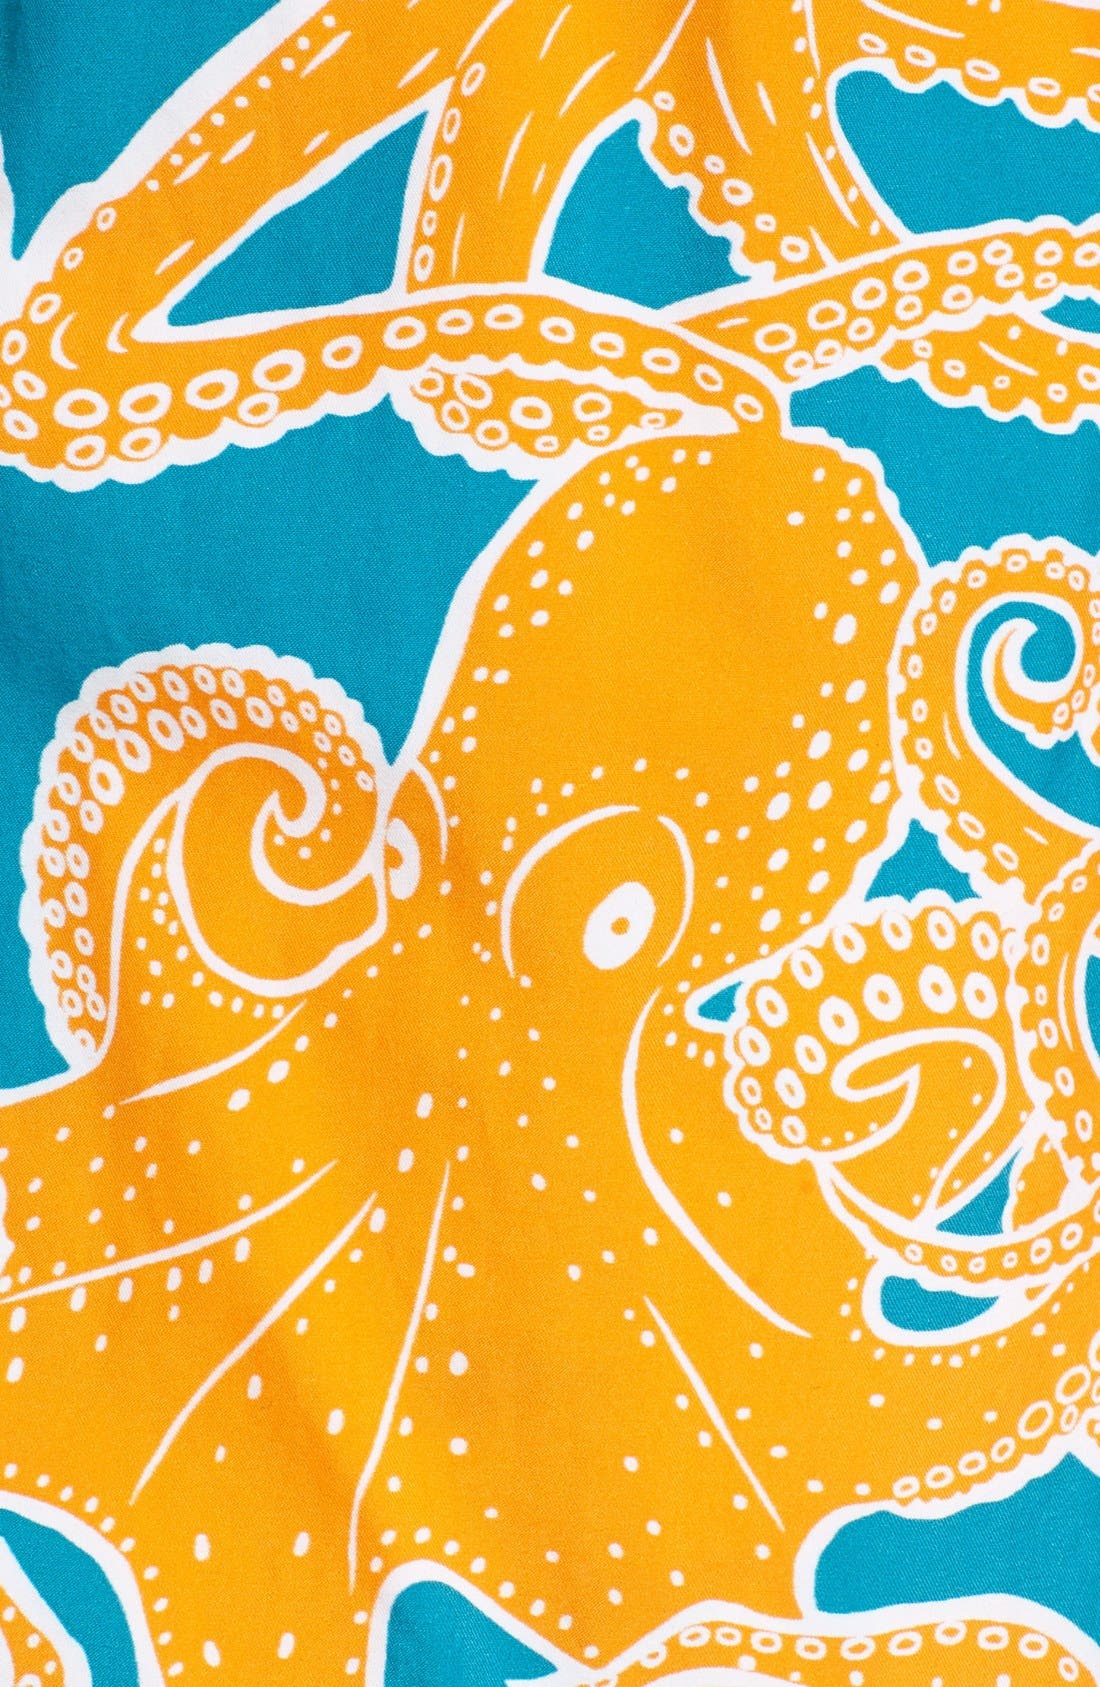 Octopus Print Swim Trunks,                             Alternate thumbnail 5, color,                             Kumquat